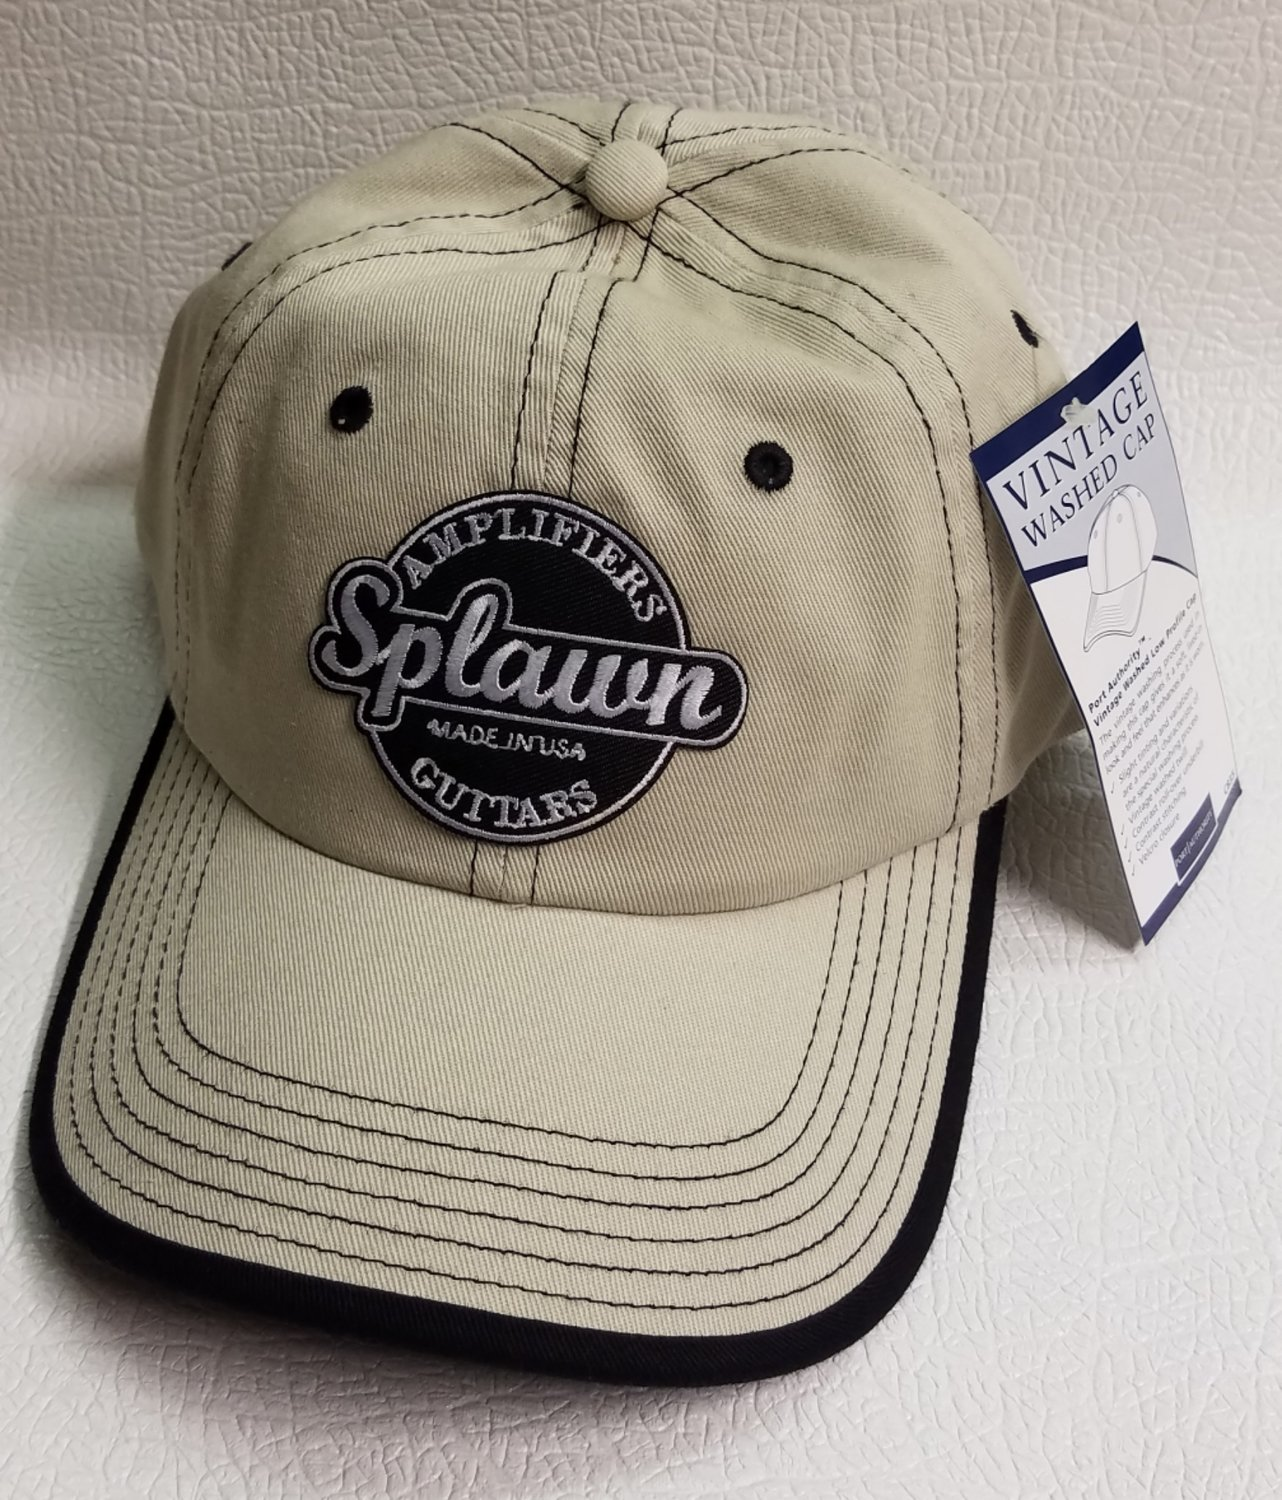 Splawn Amplification Guitars Center Logo Port Authority Cap Vintage Contrast Stitch Stone